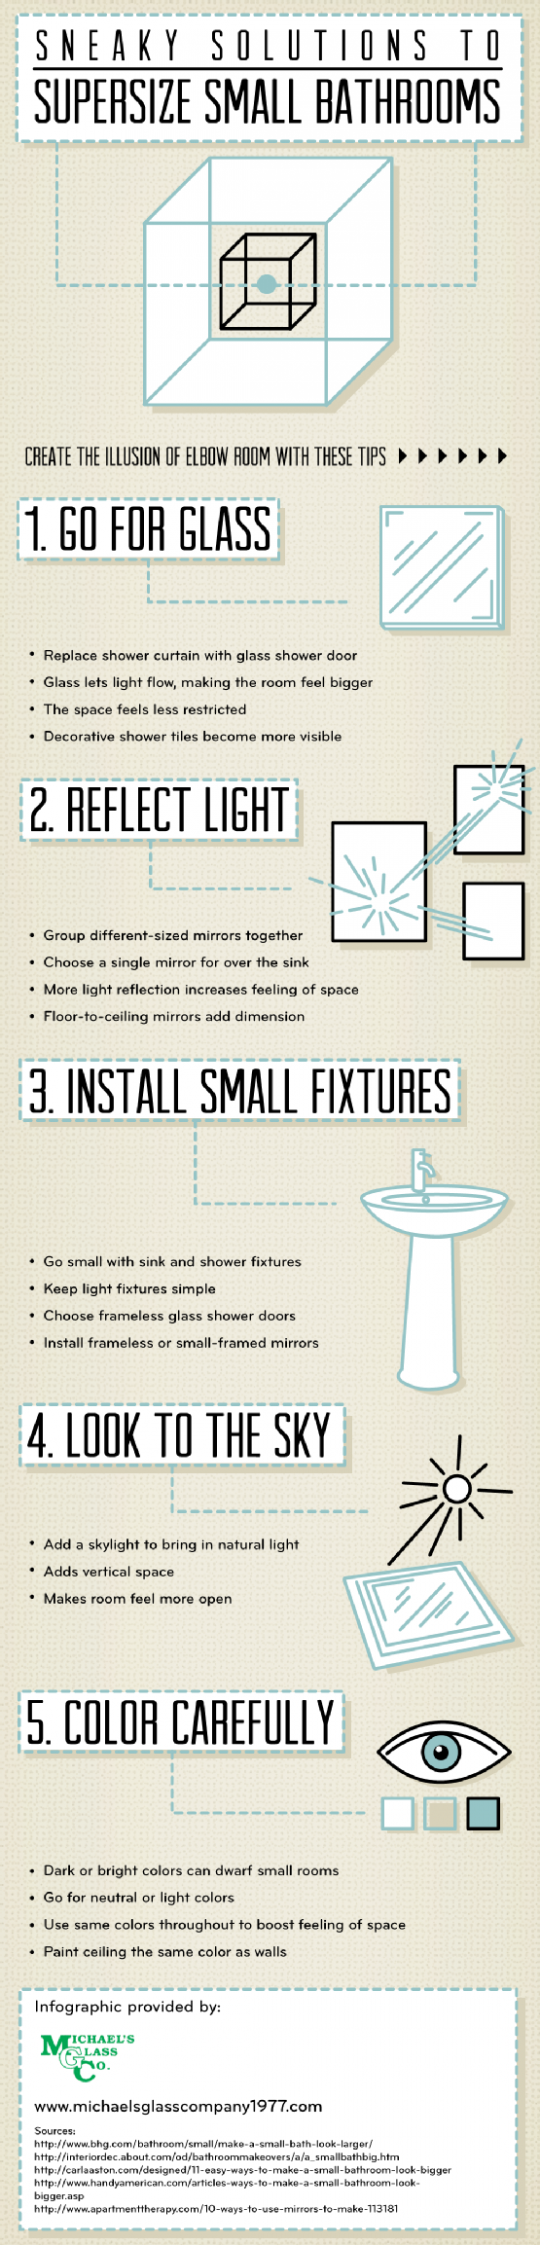 Sneaky Solutions to Supersize Small Bathrooms